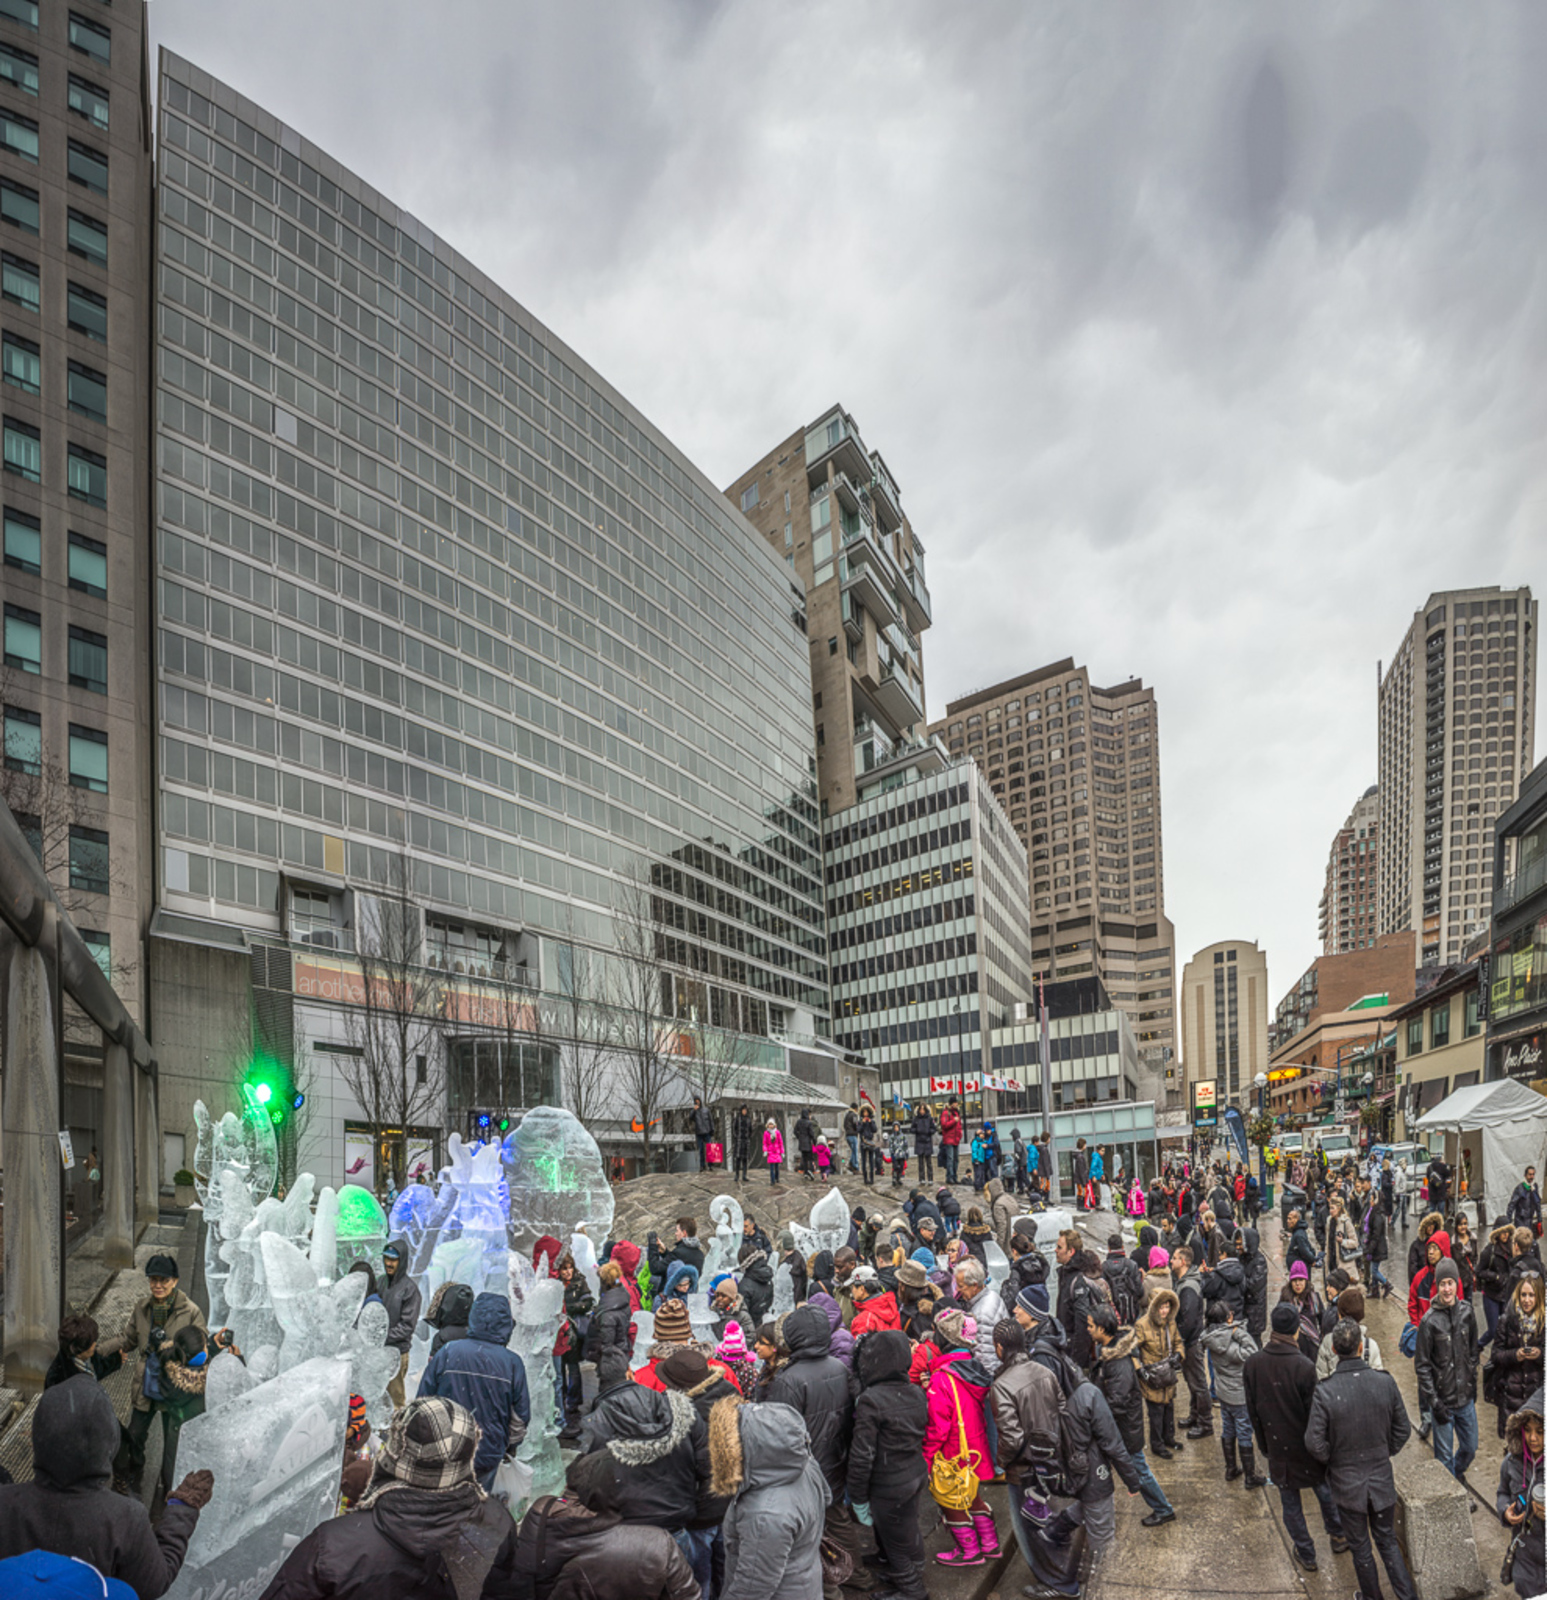 Toronto Icefest on Bloor attracts crowds